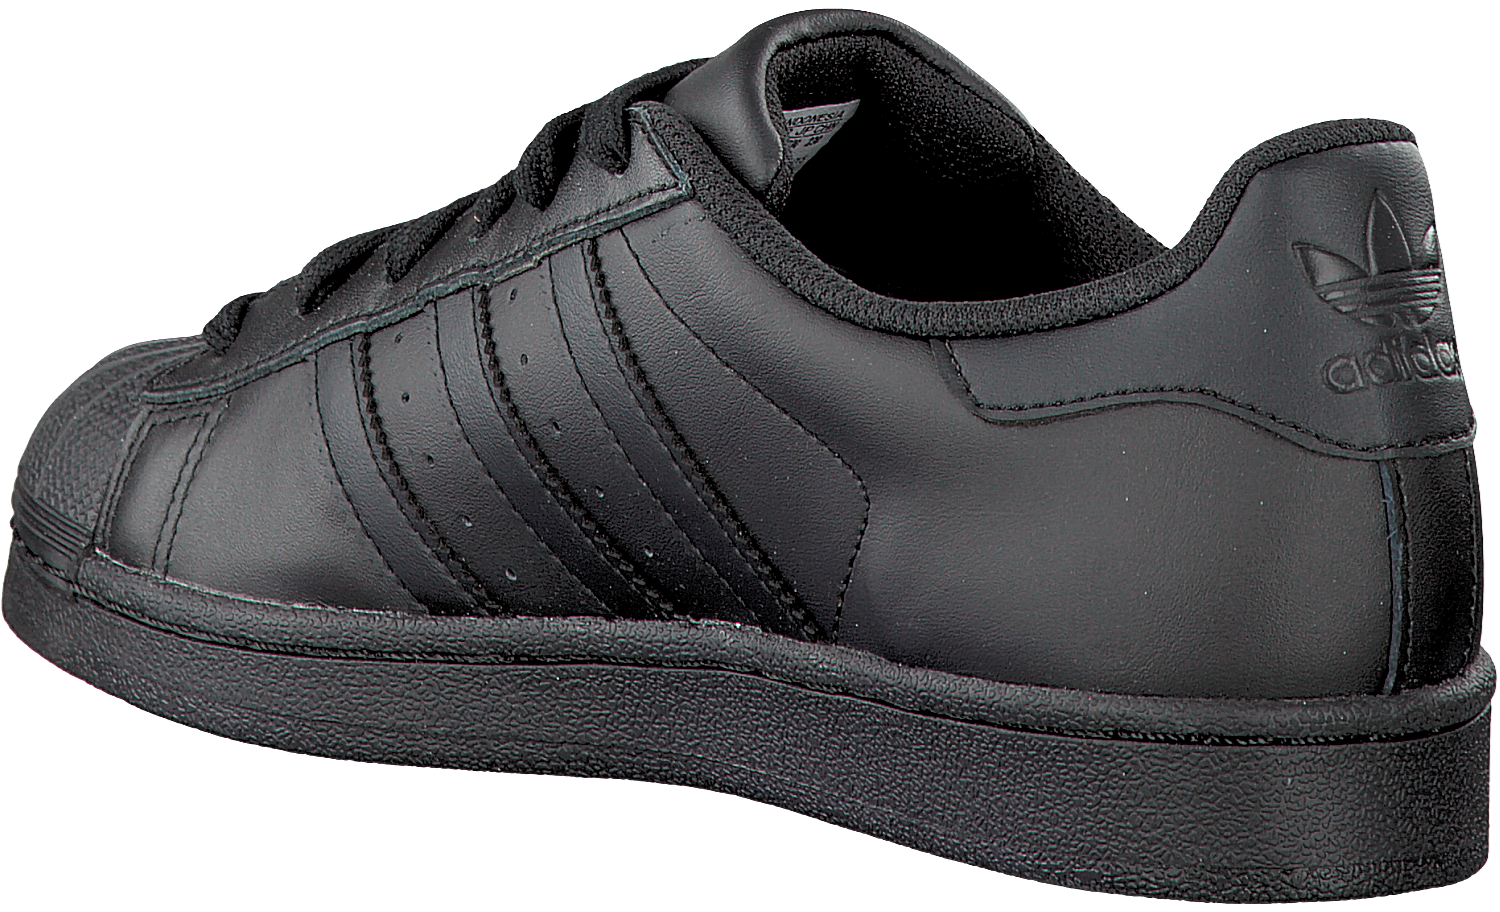 low priced 2816b cd8e7 Zwarte ADIDAS Sneakers SUPERSTAR DAMES. ADIDAS. -70%. Previous